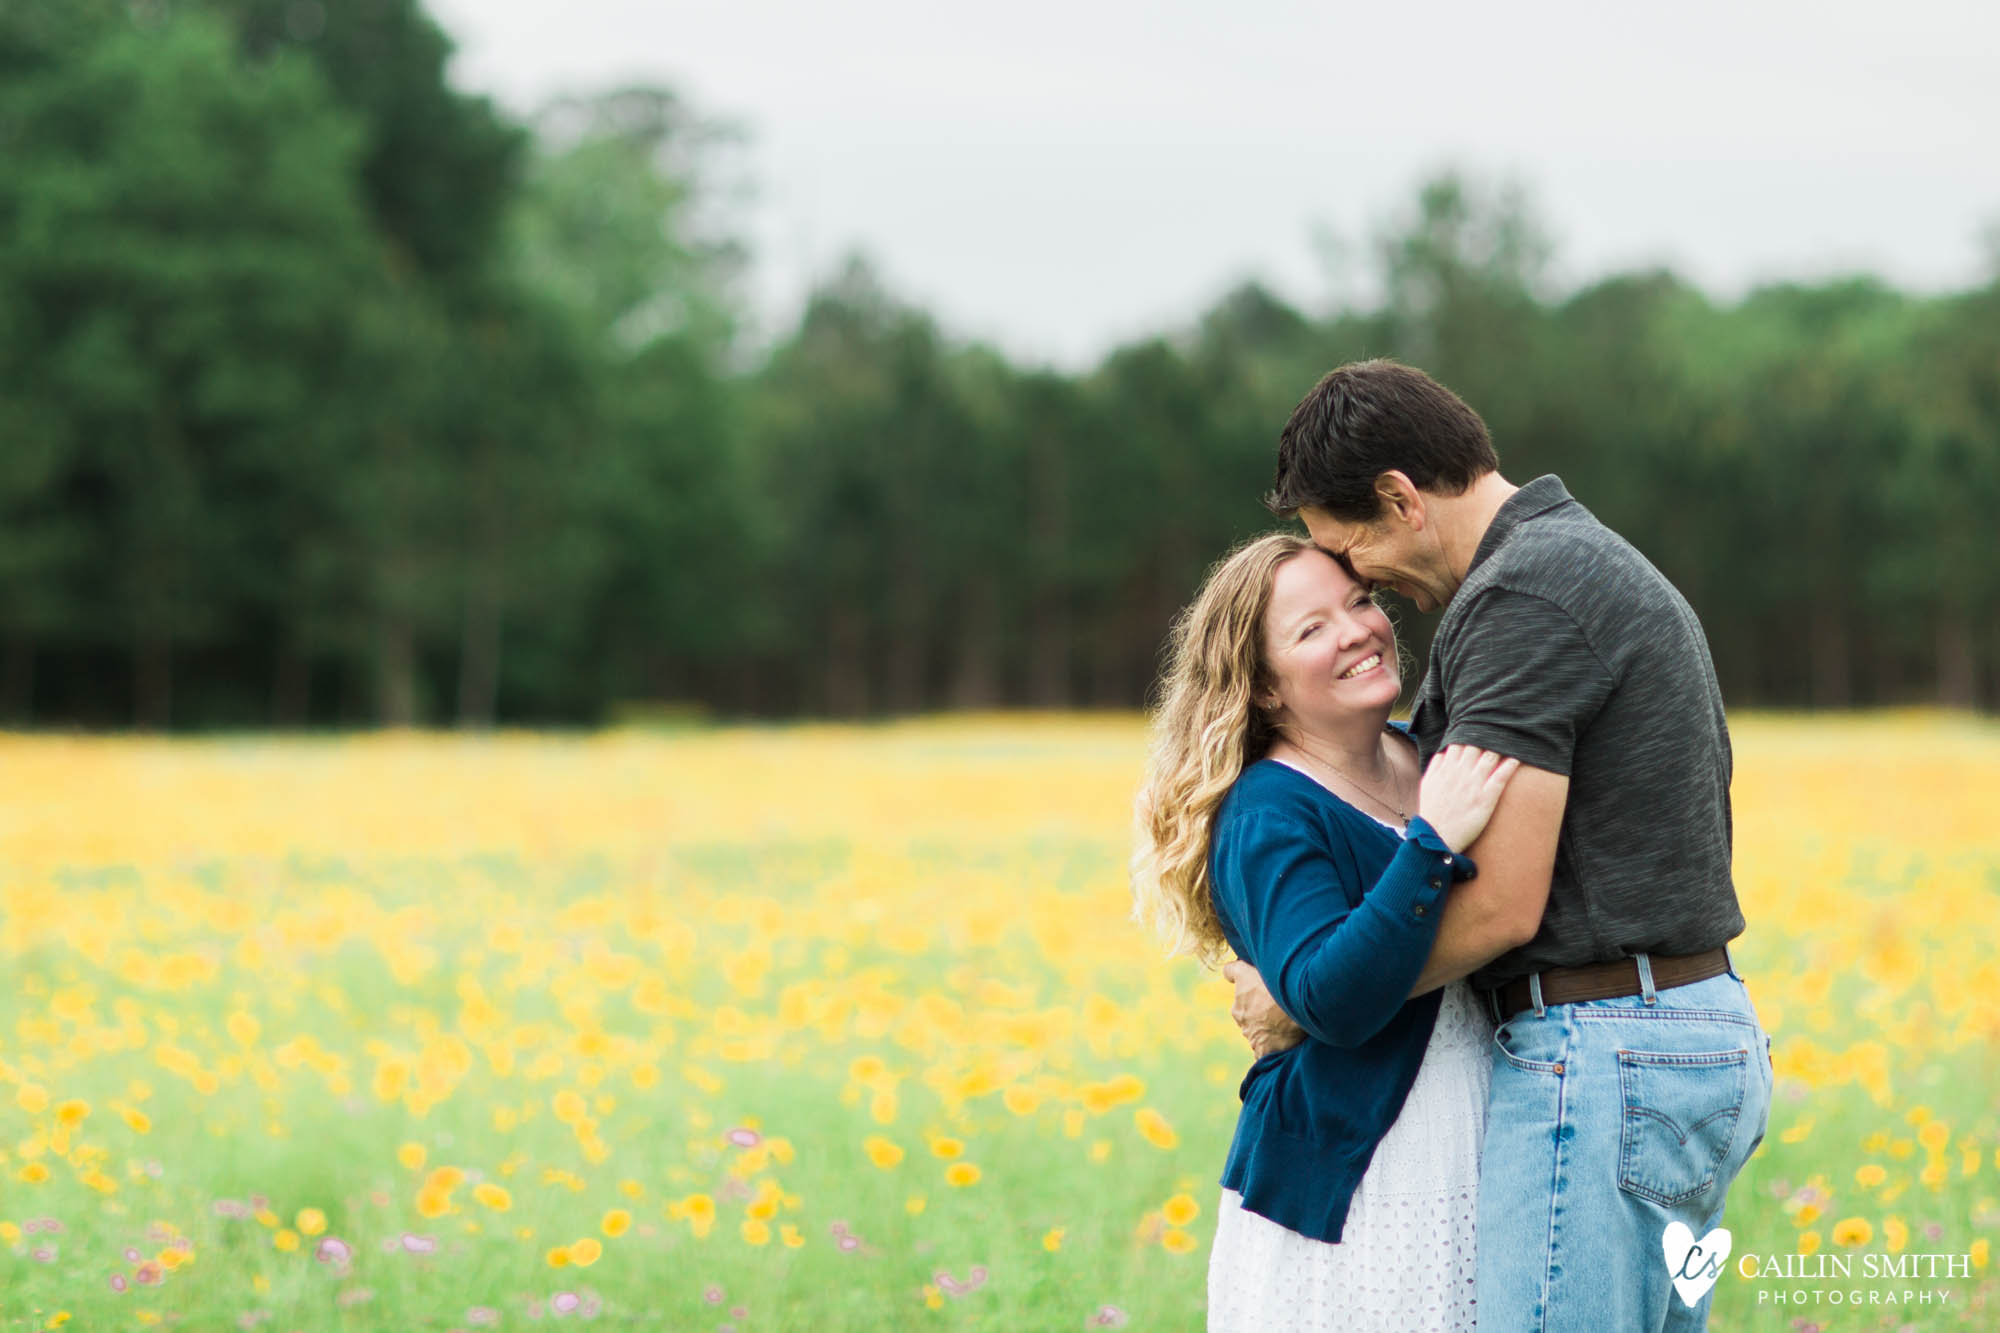 Christie_Nathan_Flower_Field_engagement_Photography_014.jpg